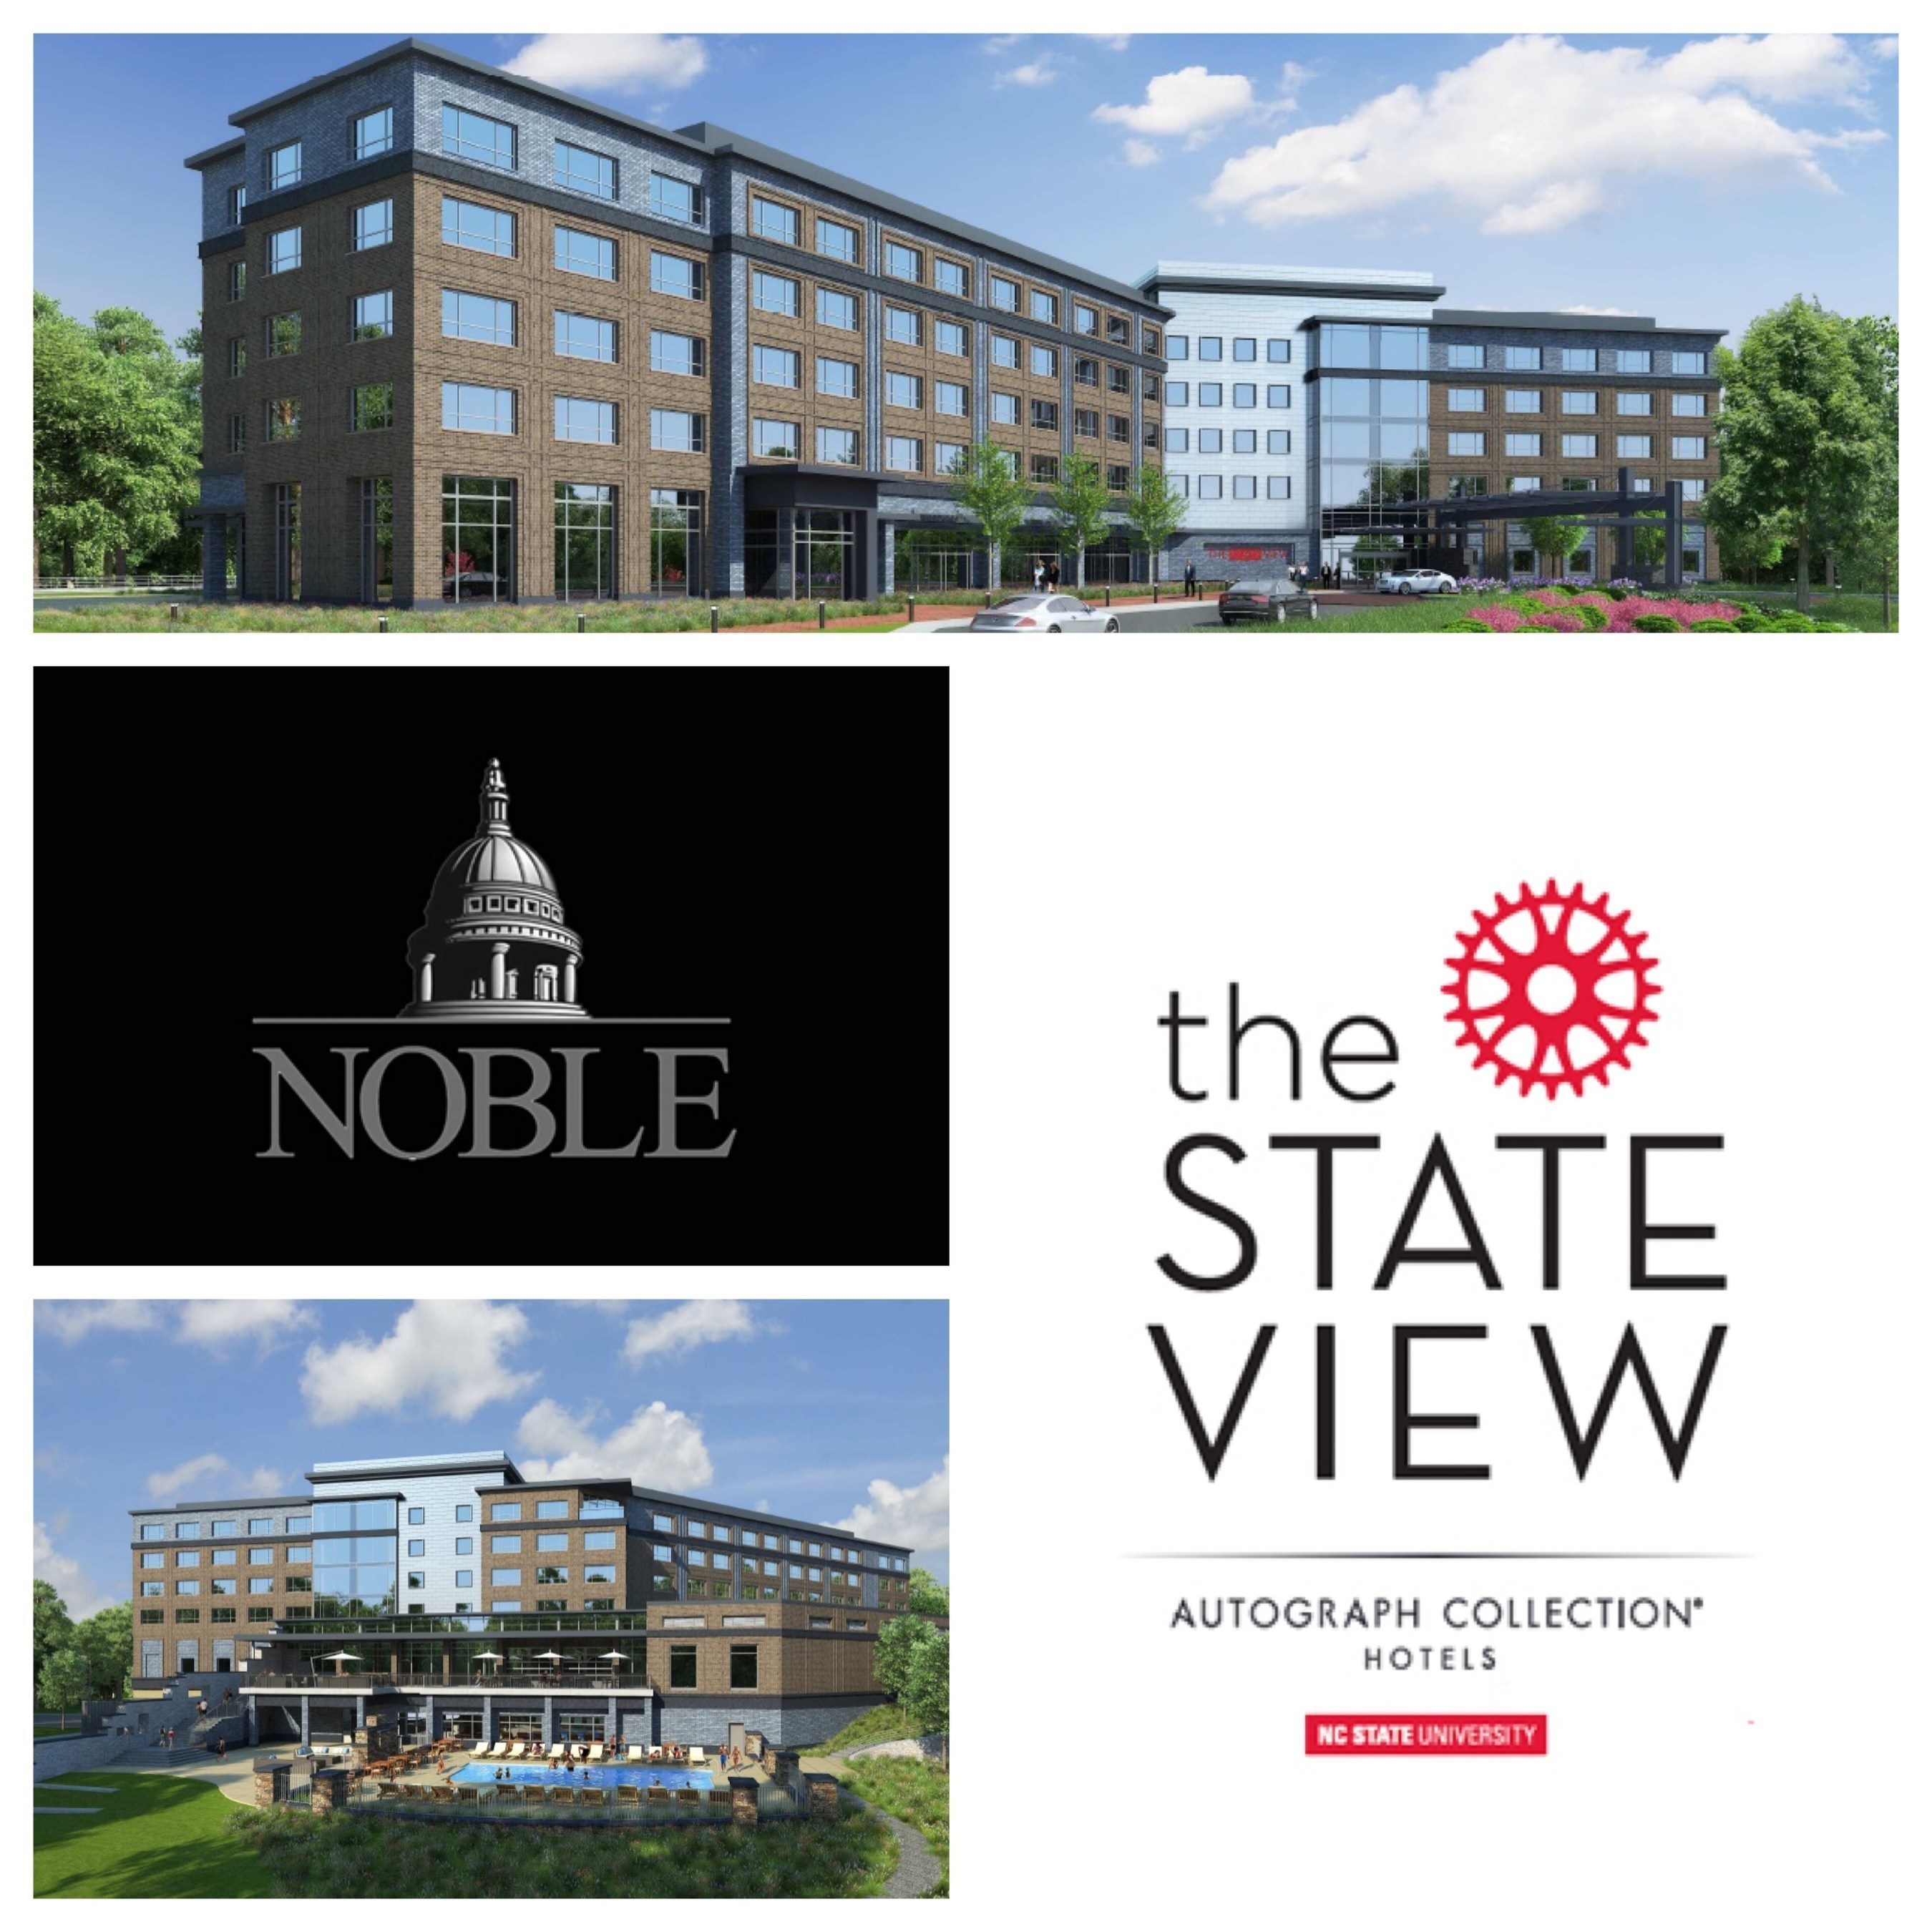 The StateView Hotel breaks ground. The hotel will be centrally located on North Carolina State University's Centennial Campus in Raleigh, North Carolina.